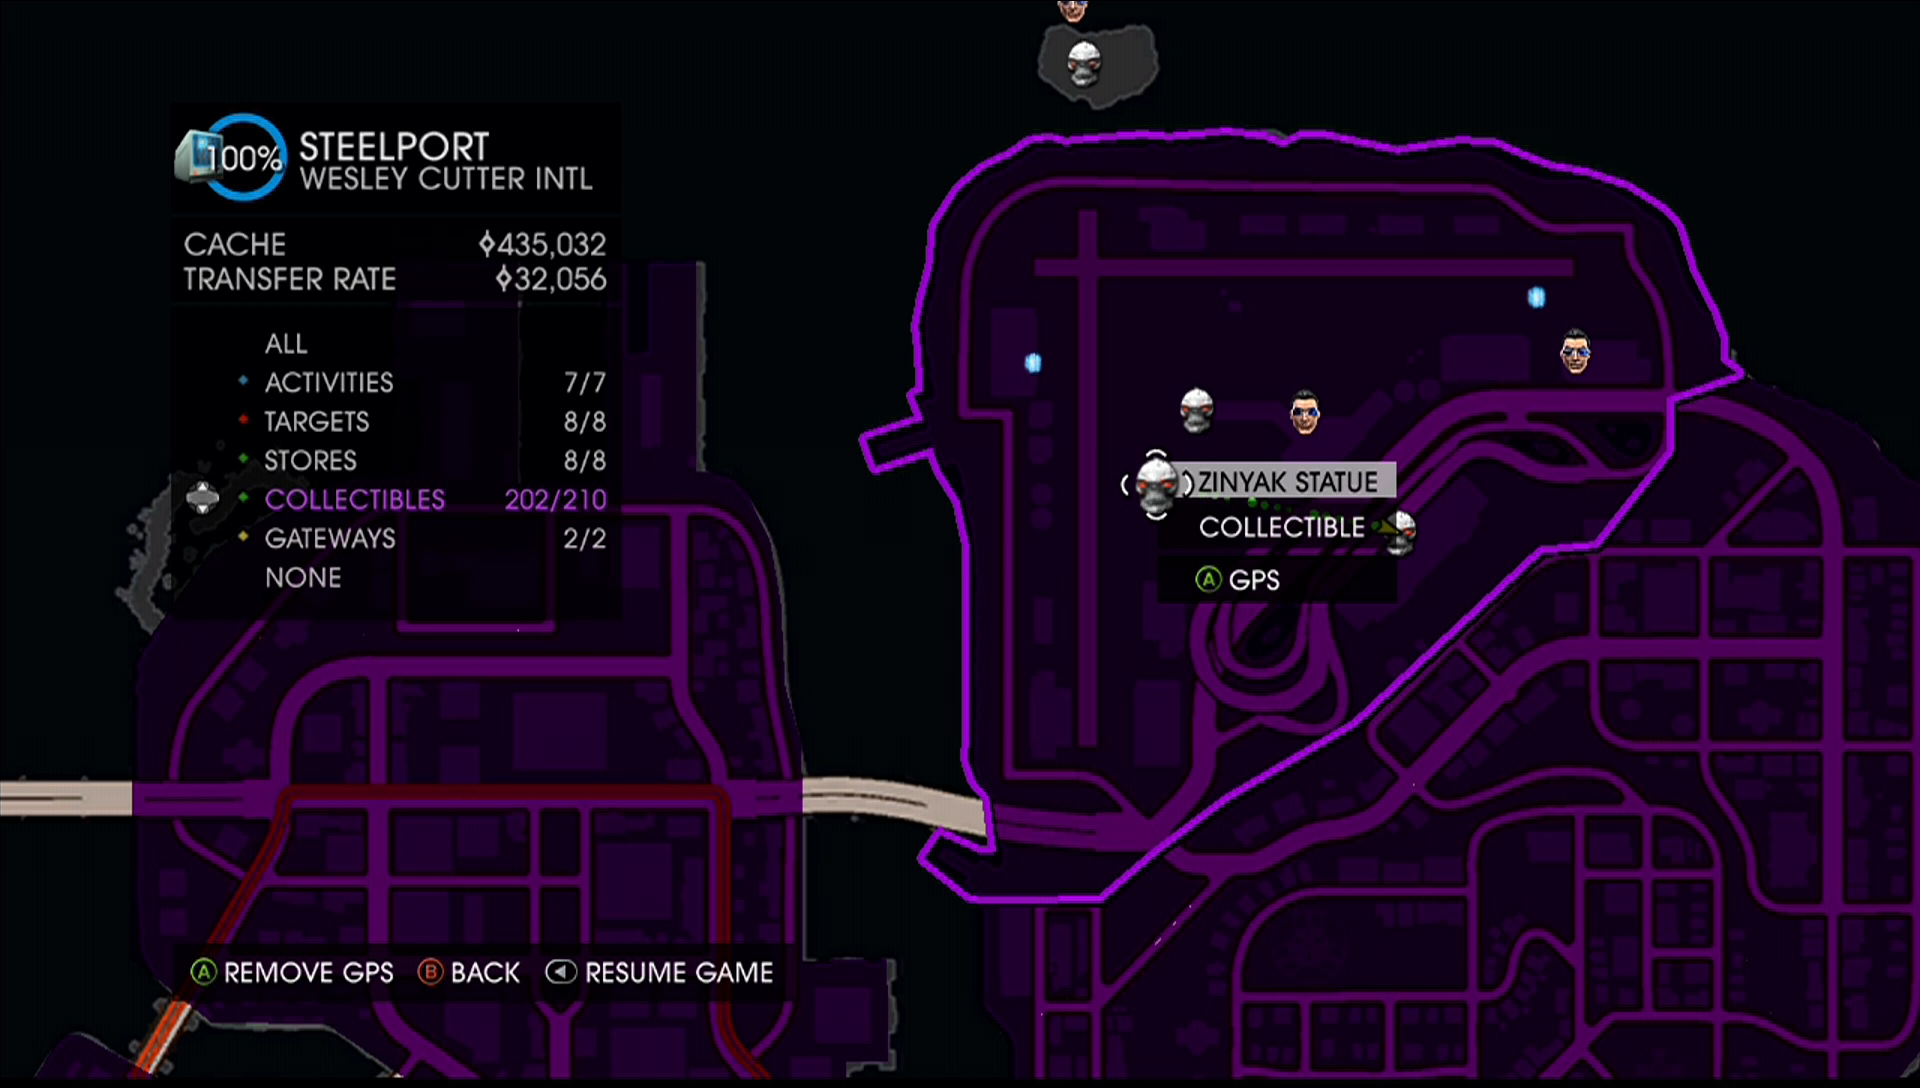 helicopter saints row 3 cheat with Saints Row The Third Gang Operation Locations on SAINTS ROW 3 AIRPLANE CHEATS additionally Gta Xbox Cheats likewise Ewrazphoto Infinite Jump Hack likewise Hilo Unico Spoilers Everywhere  enta El Final De Ac Unity Aqui in addition Watch.